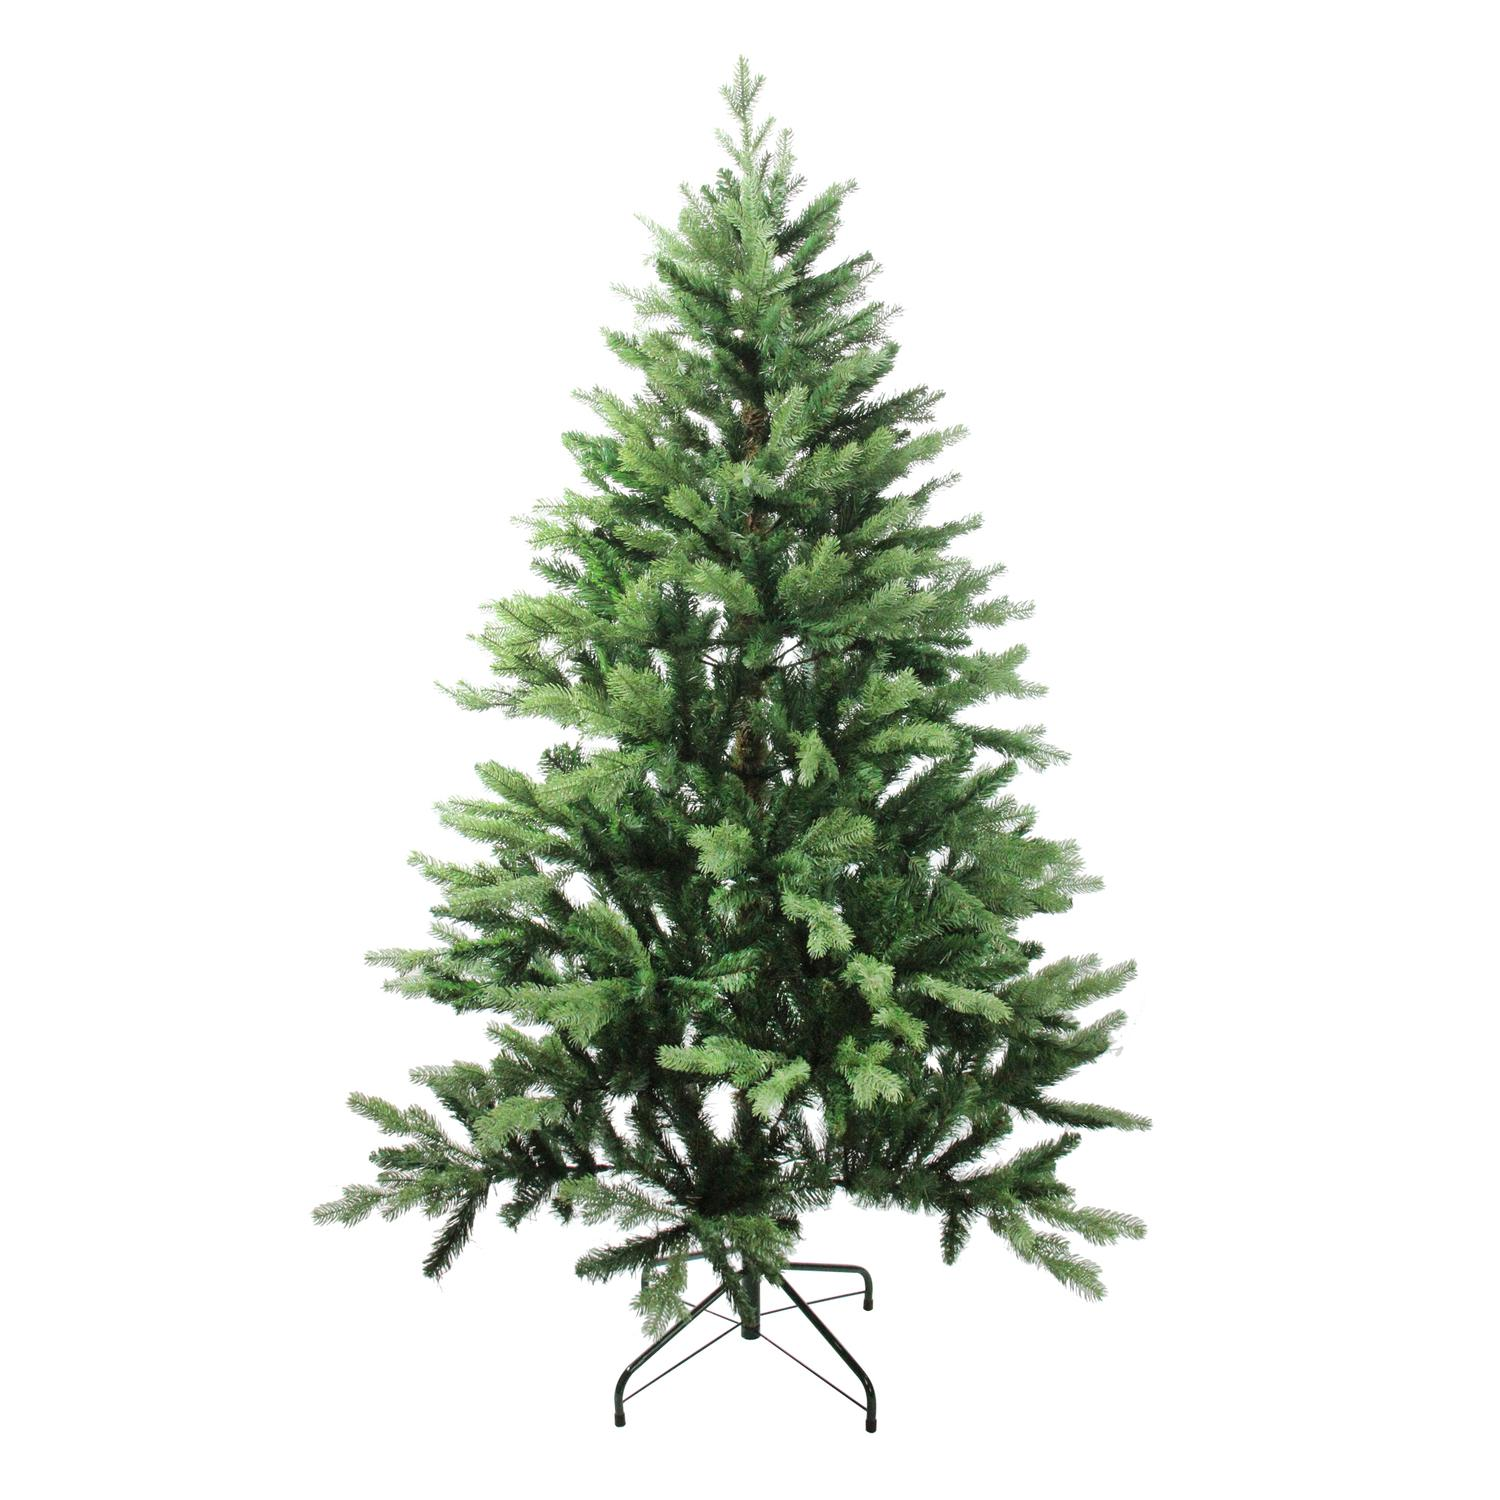 7' Mixed Coniferous Pine Artificial Christmas Tree - Unlit - image 2 of 2